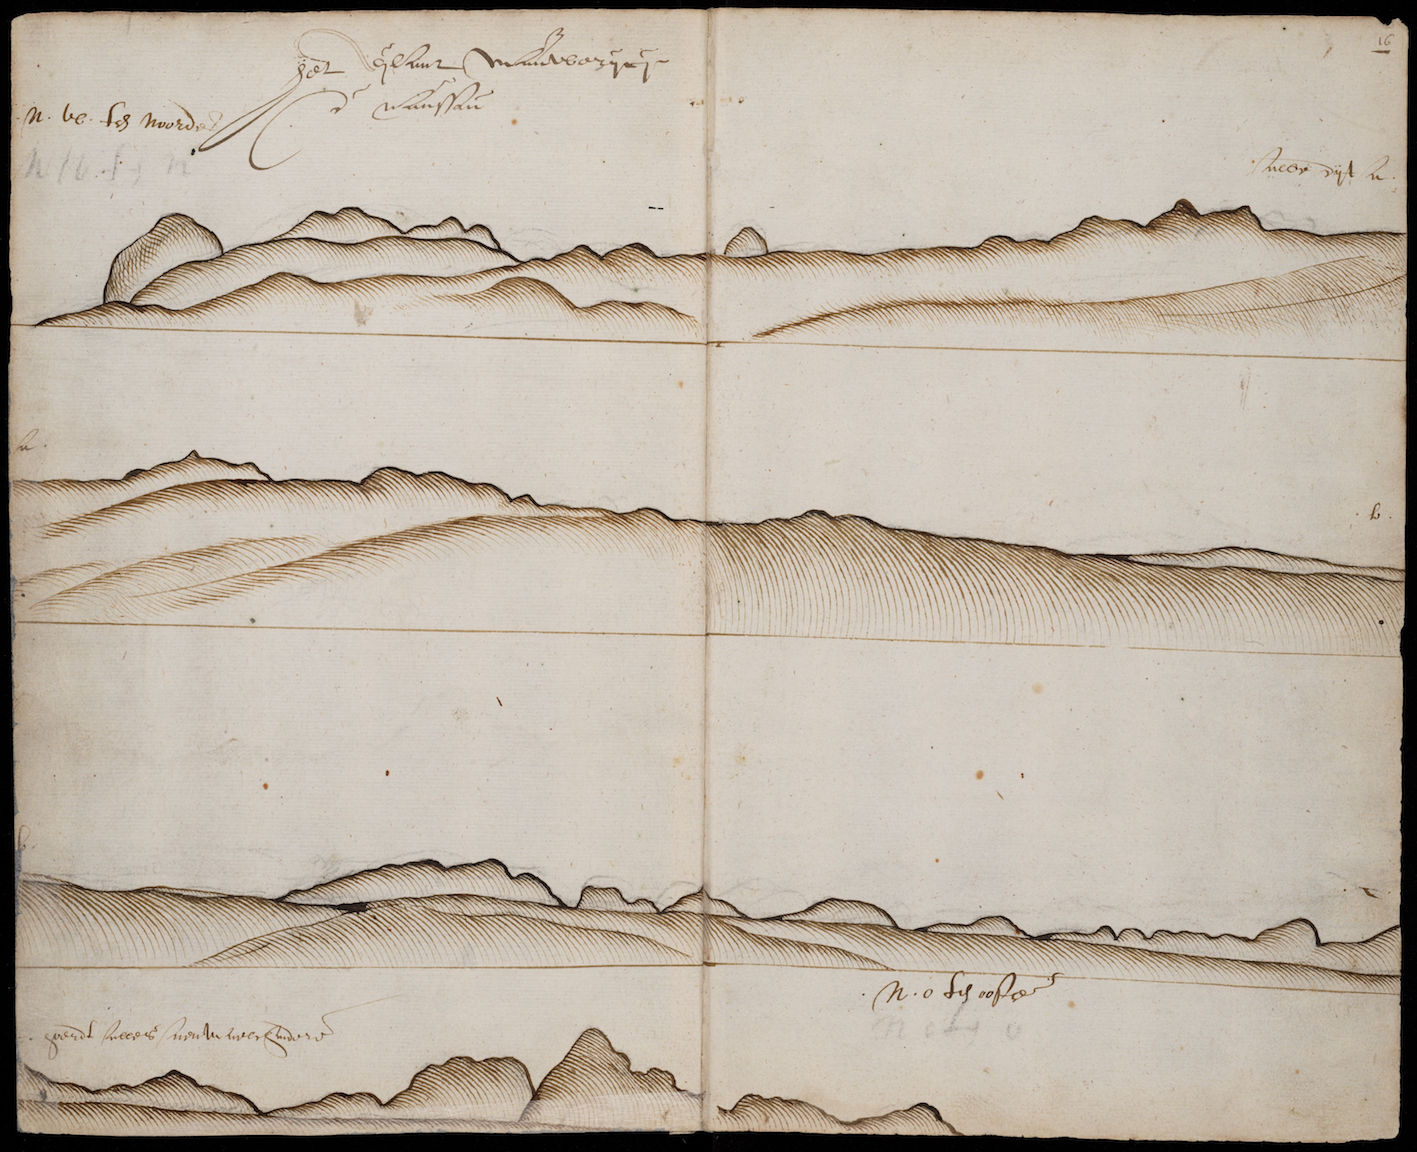 """Figure 2. Coastline of Mauritius, number 135 fols. 15v-16r. For all illustrations from the Gelderland journal: Nationaal Archief, Compagnieën op Oost-Indië, 1594-1603, nummer archiefinventaris 1.04.01, inventarisnummer 135-136, image in the public domain."""